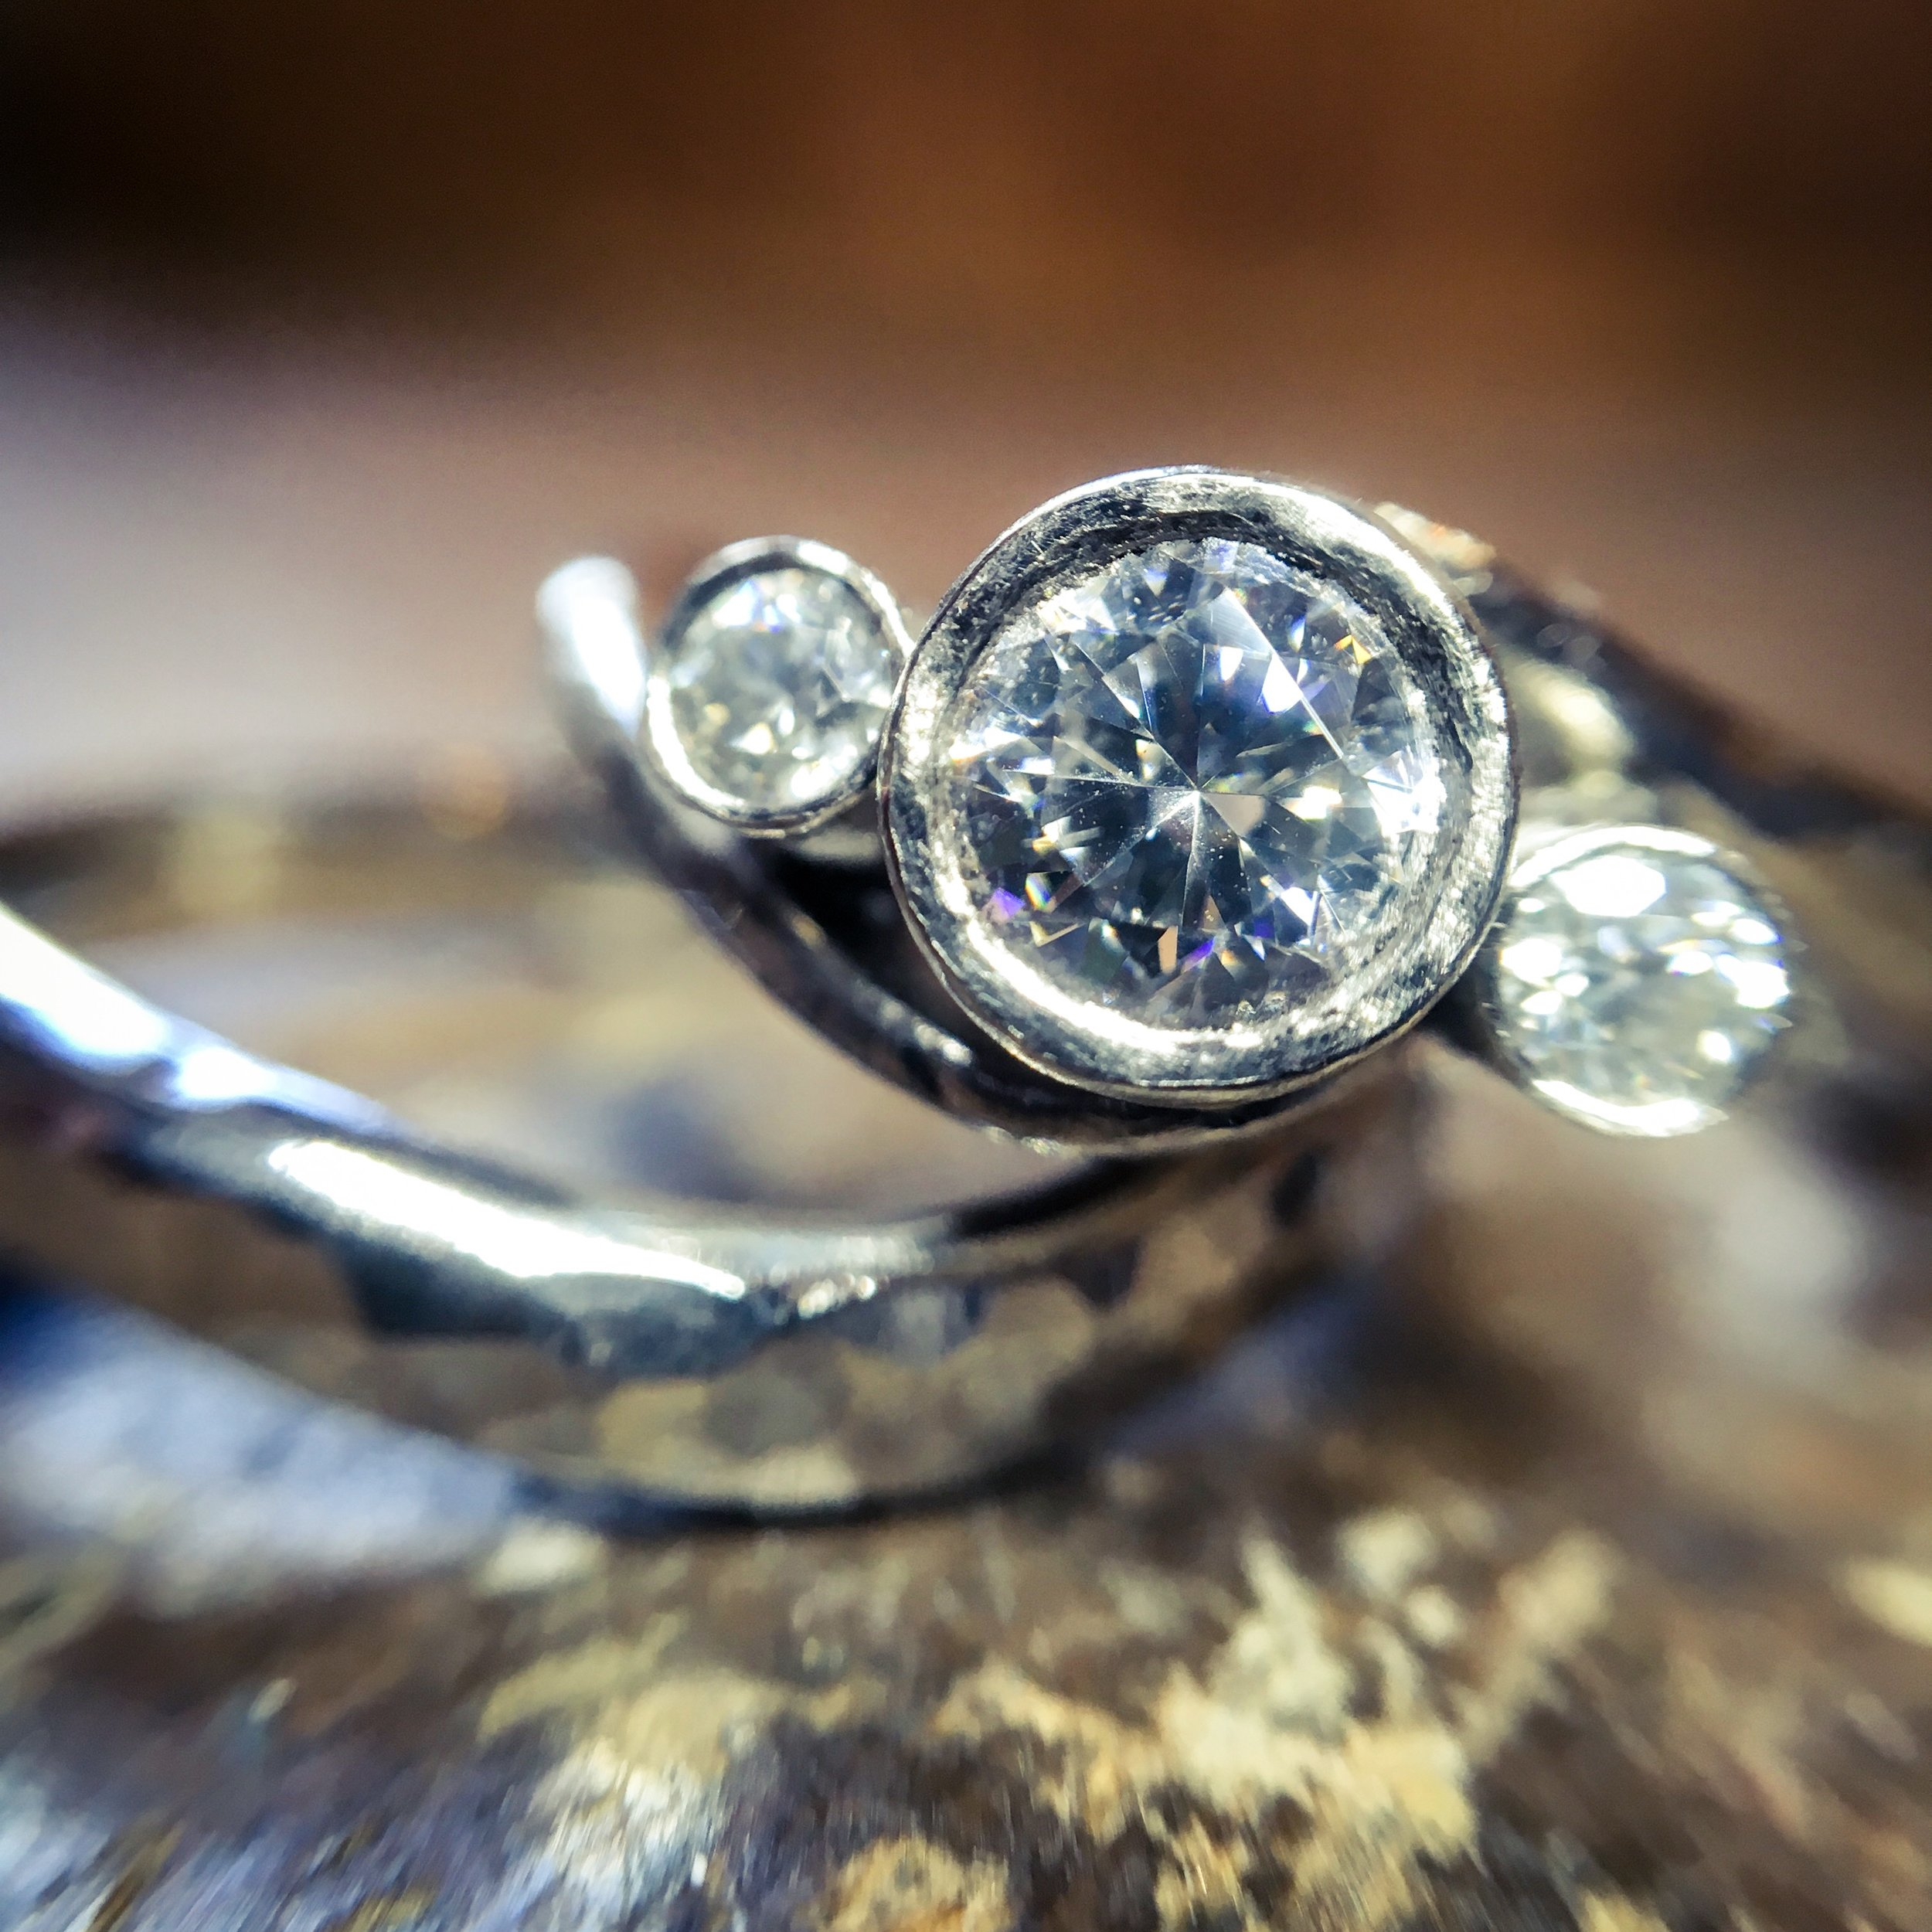 Thought I'd also add a photo of something that I finished off earlier today - Palladium, diamond and moissanite engagement and wedding ring set.